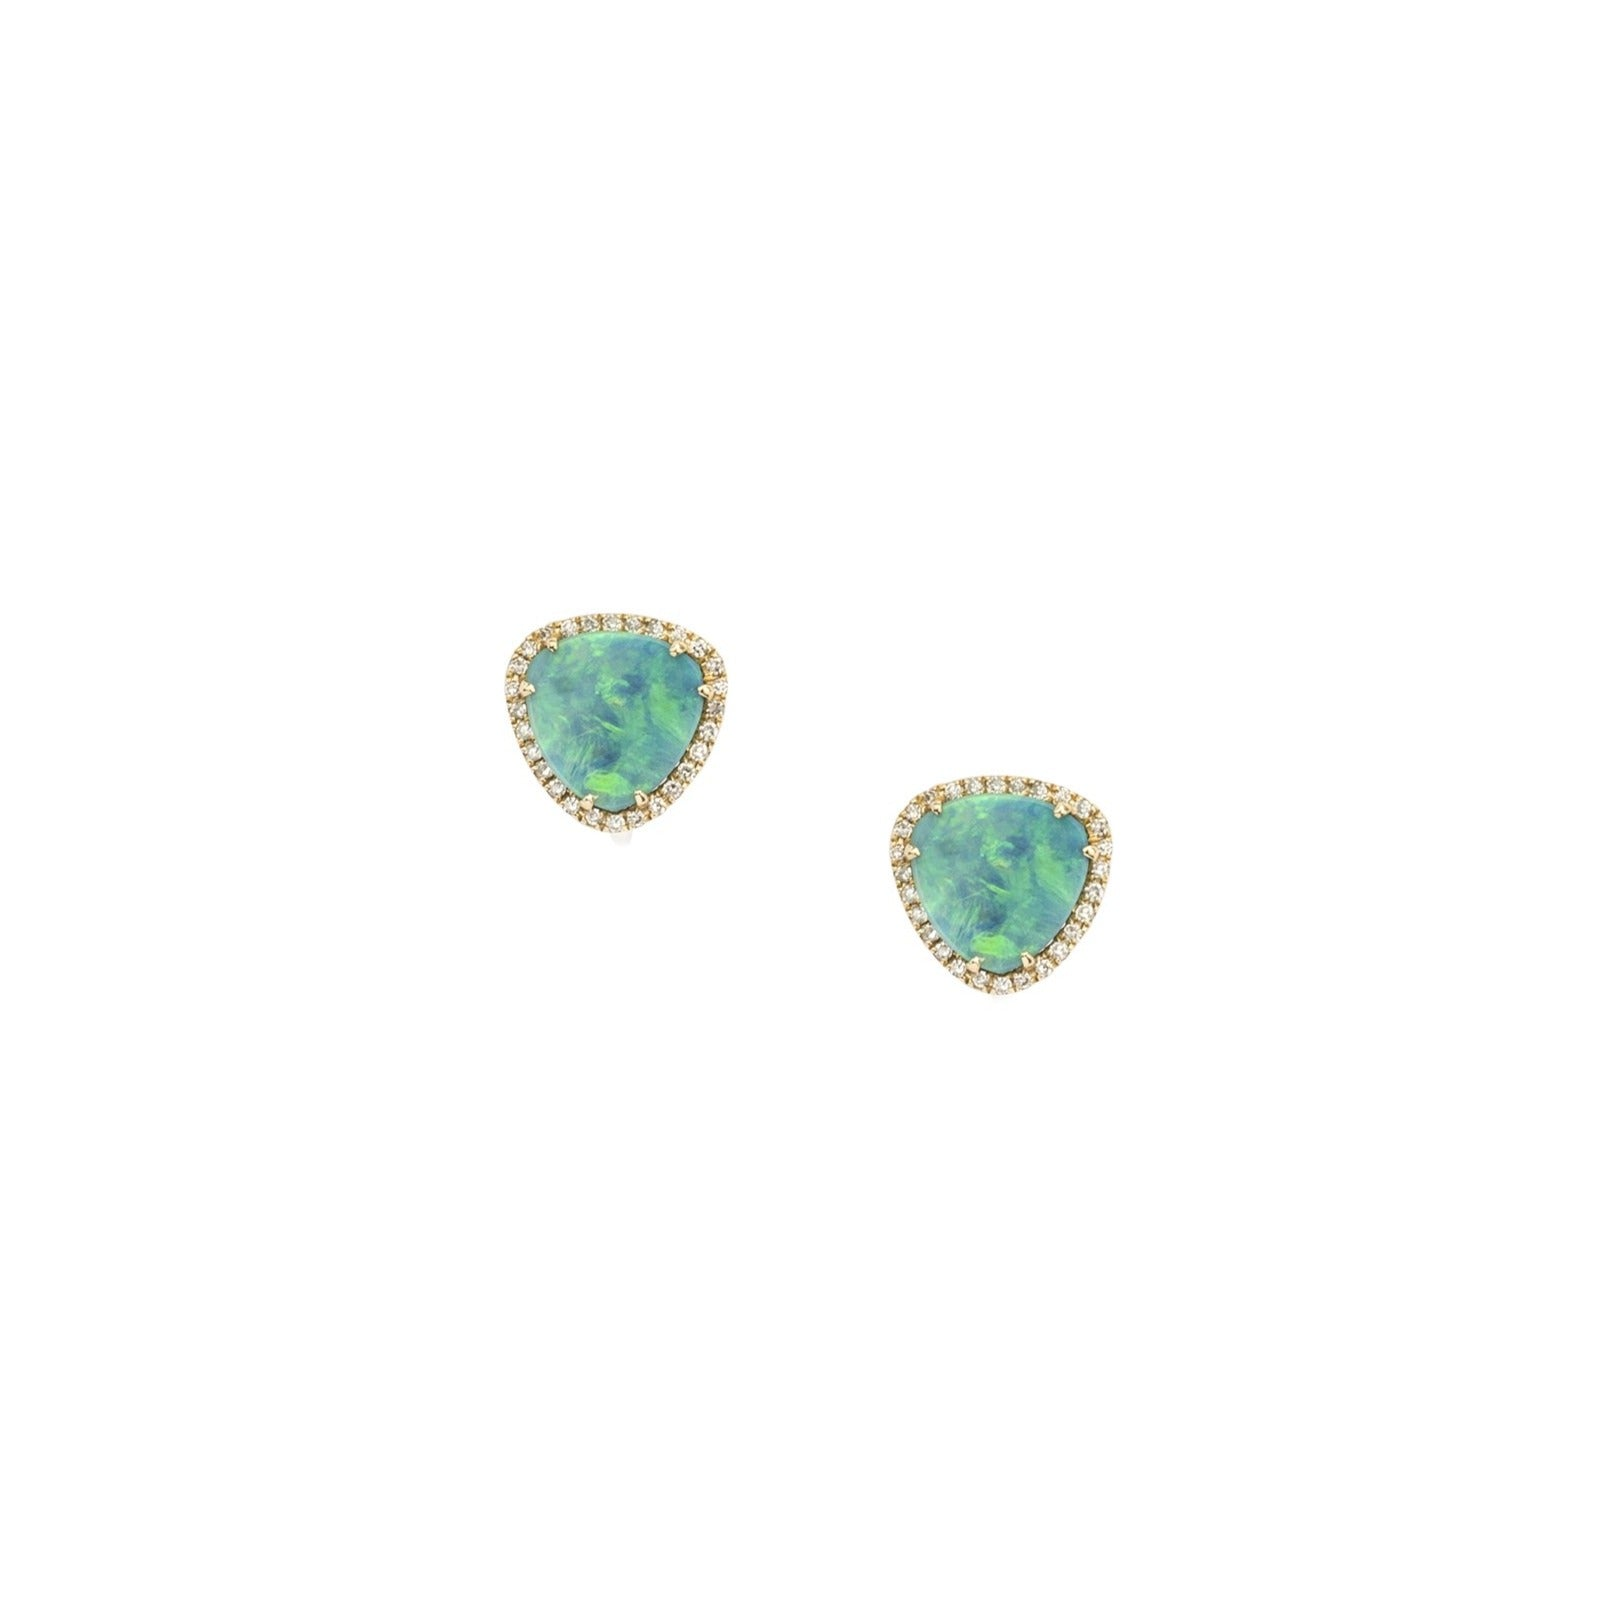 Organic Shape Opal Diamond Studs